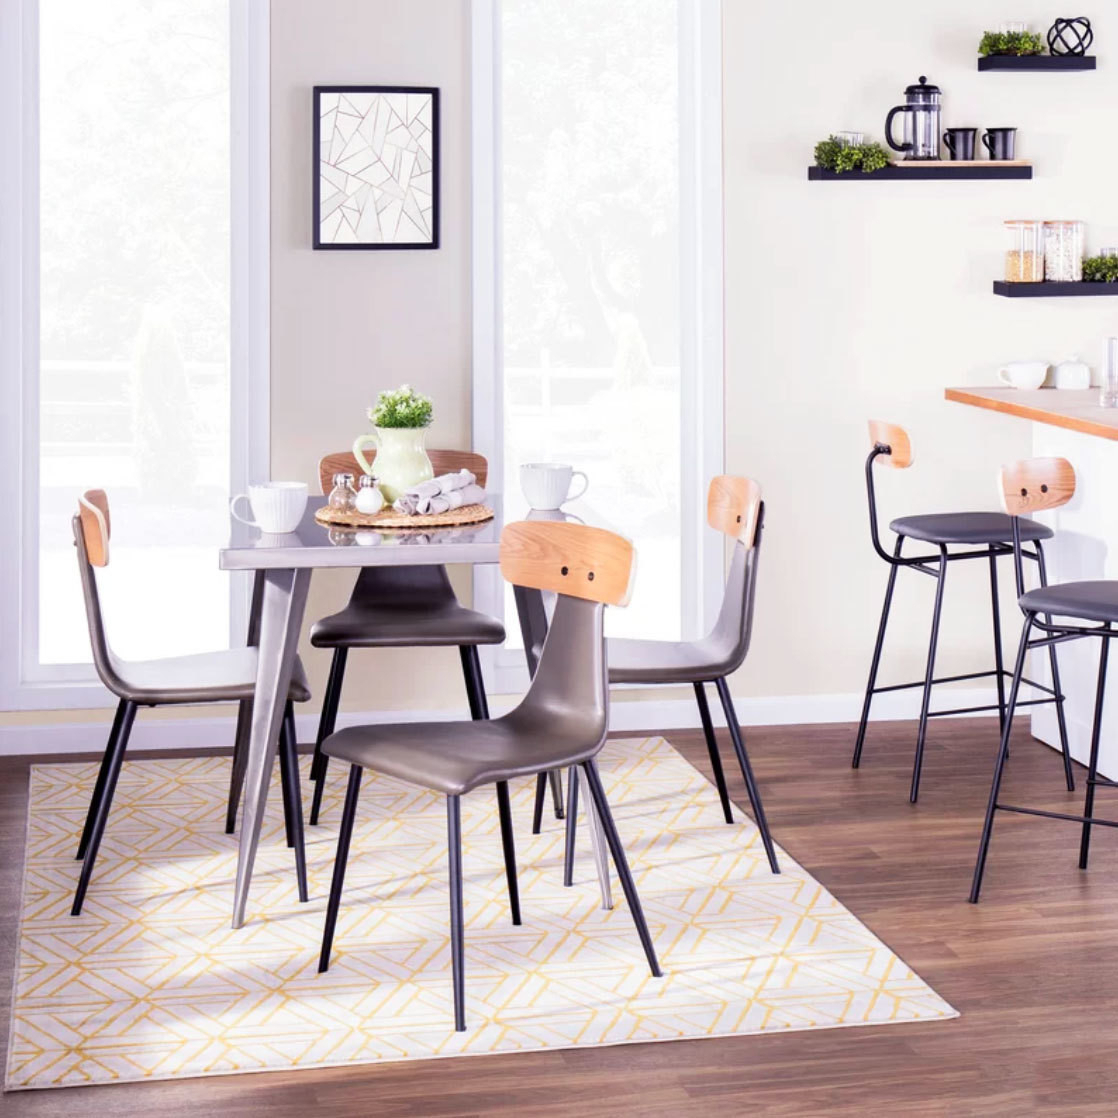 Dining Tables For Small Spaces – Small Spaces – Lonny Throughout Most Up To Date Taulbee 5 Piece Dining Sets (View 18 of 20)